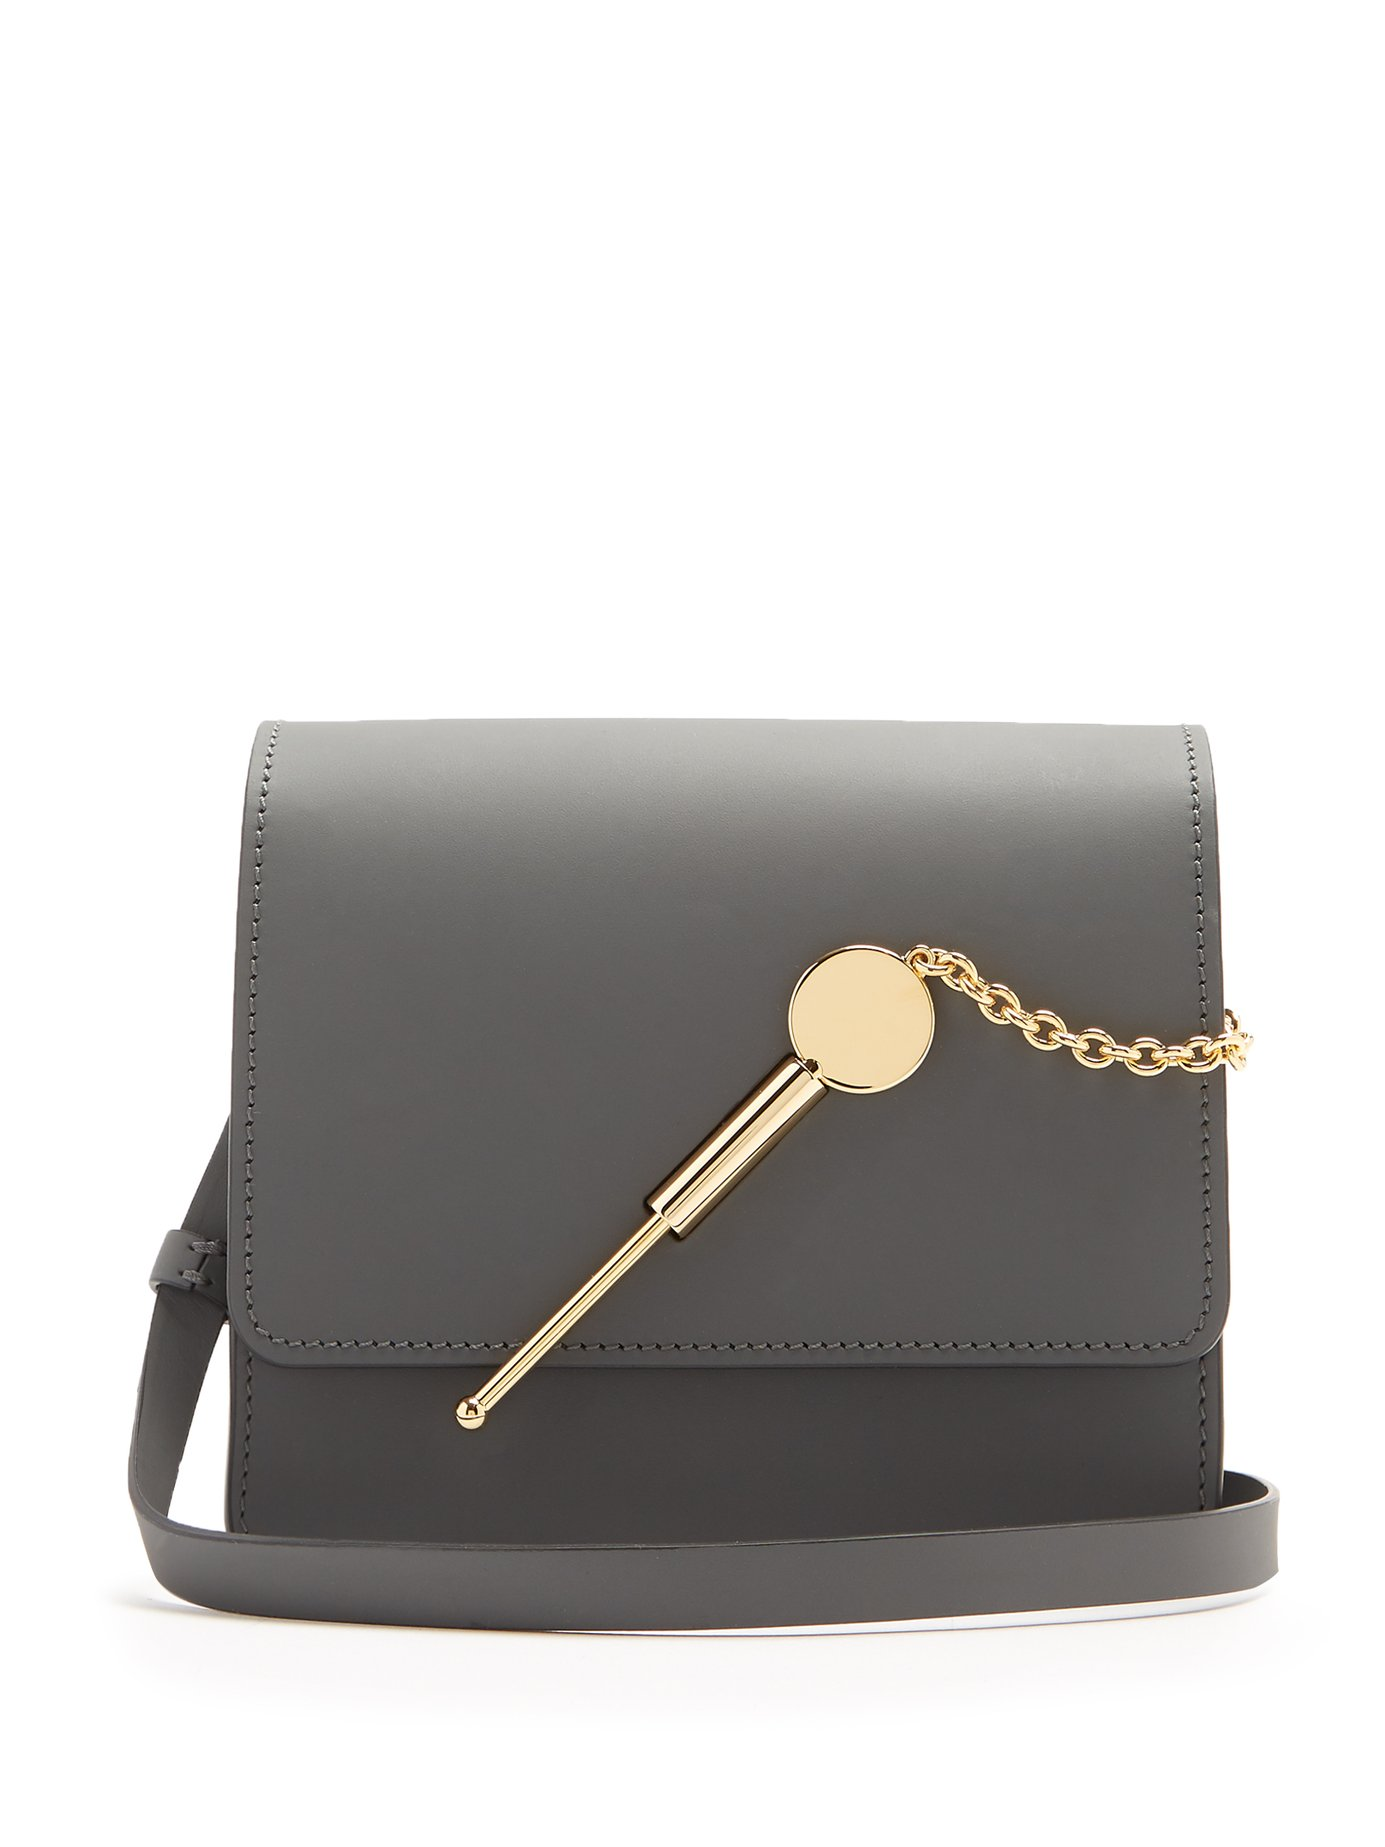 6. Leather bag, £325 by Sophie Hulme